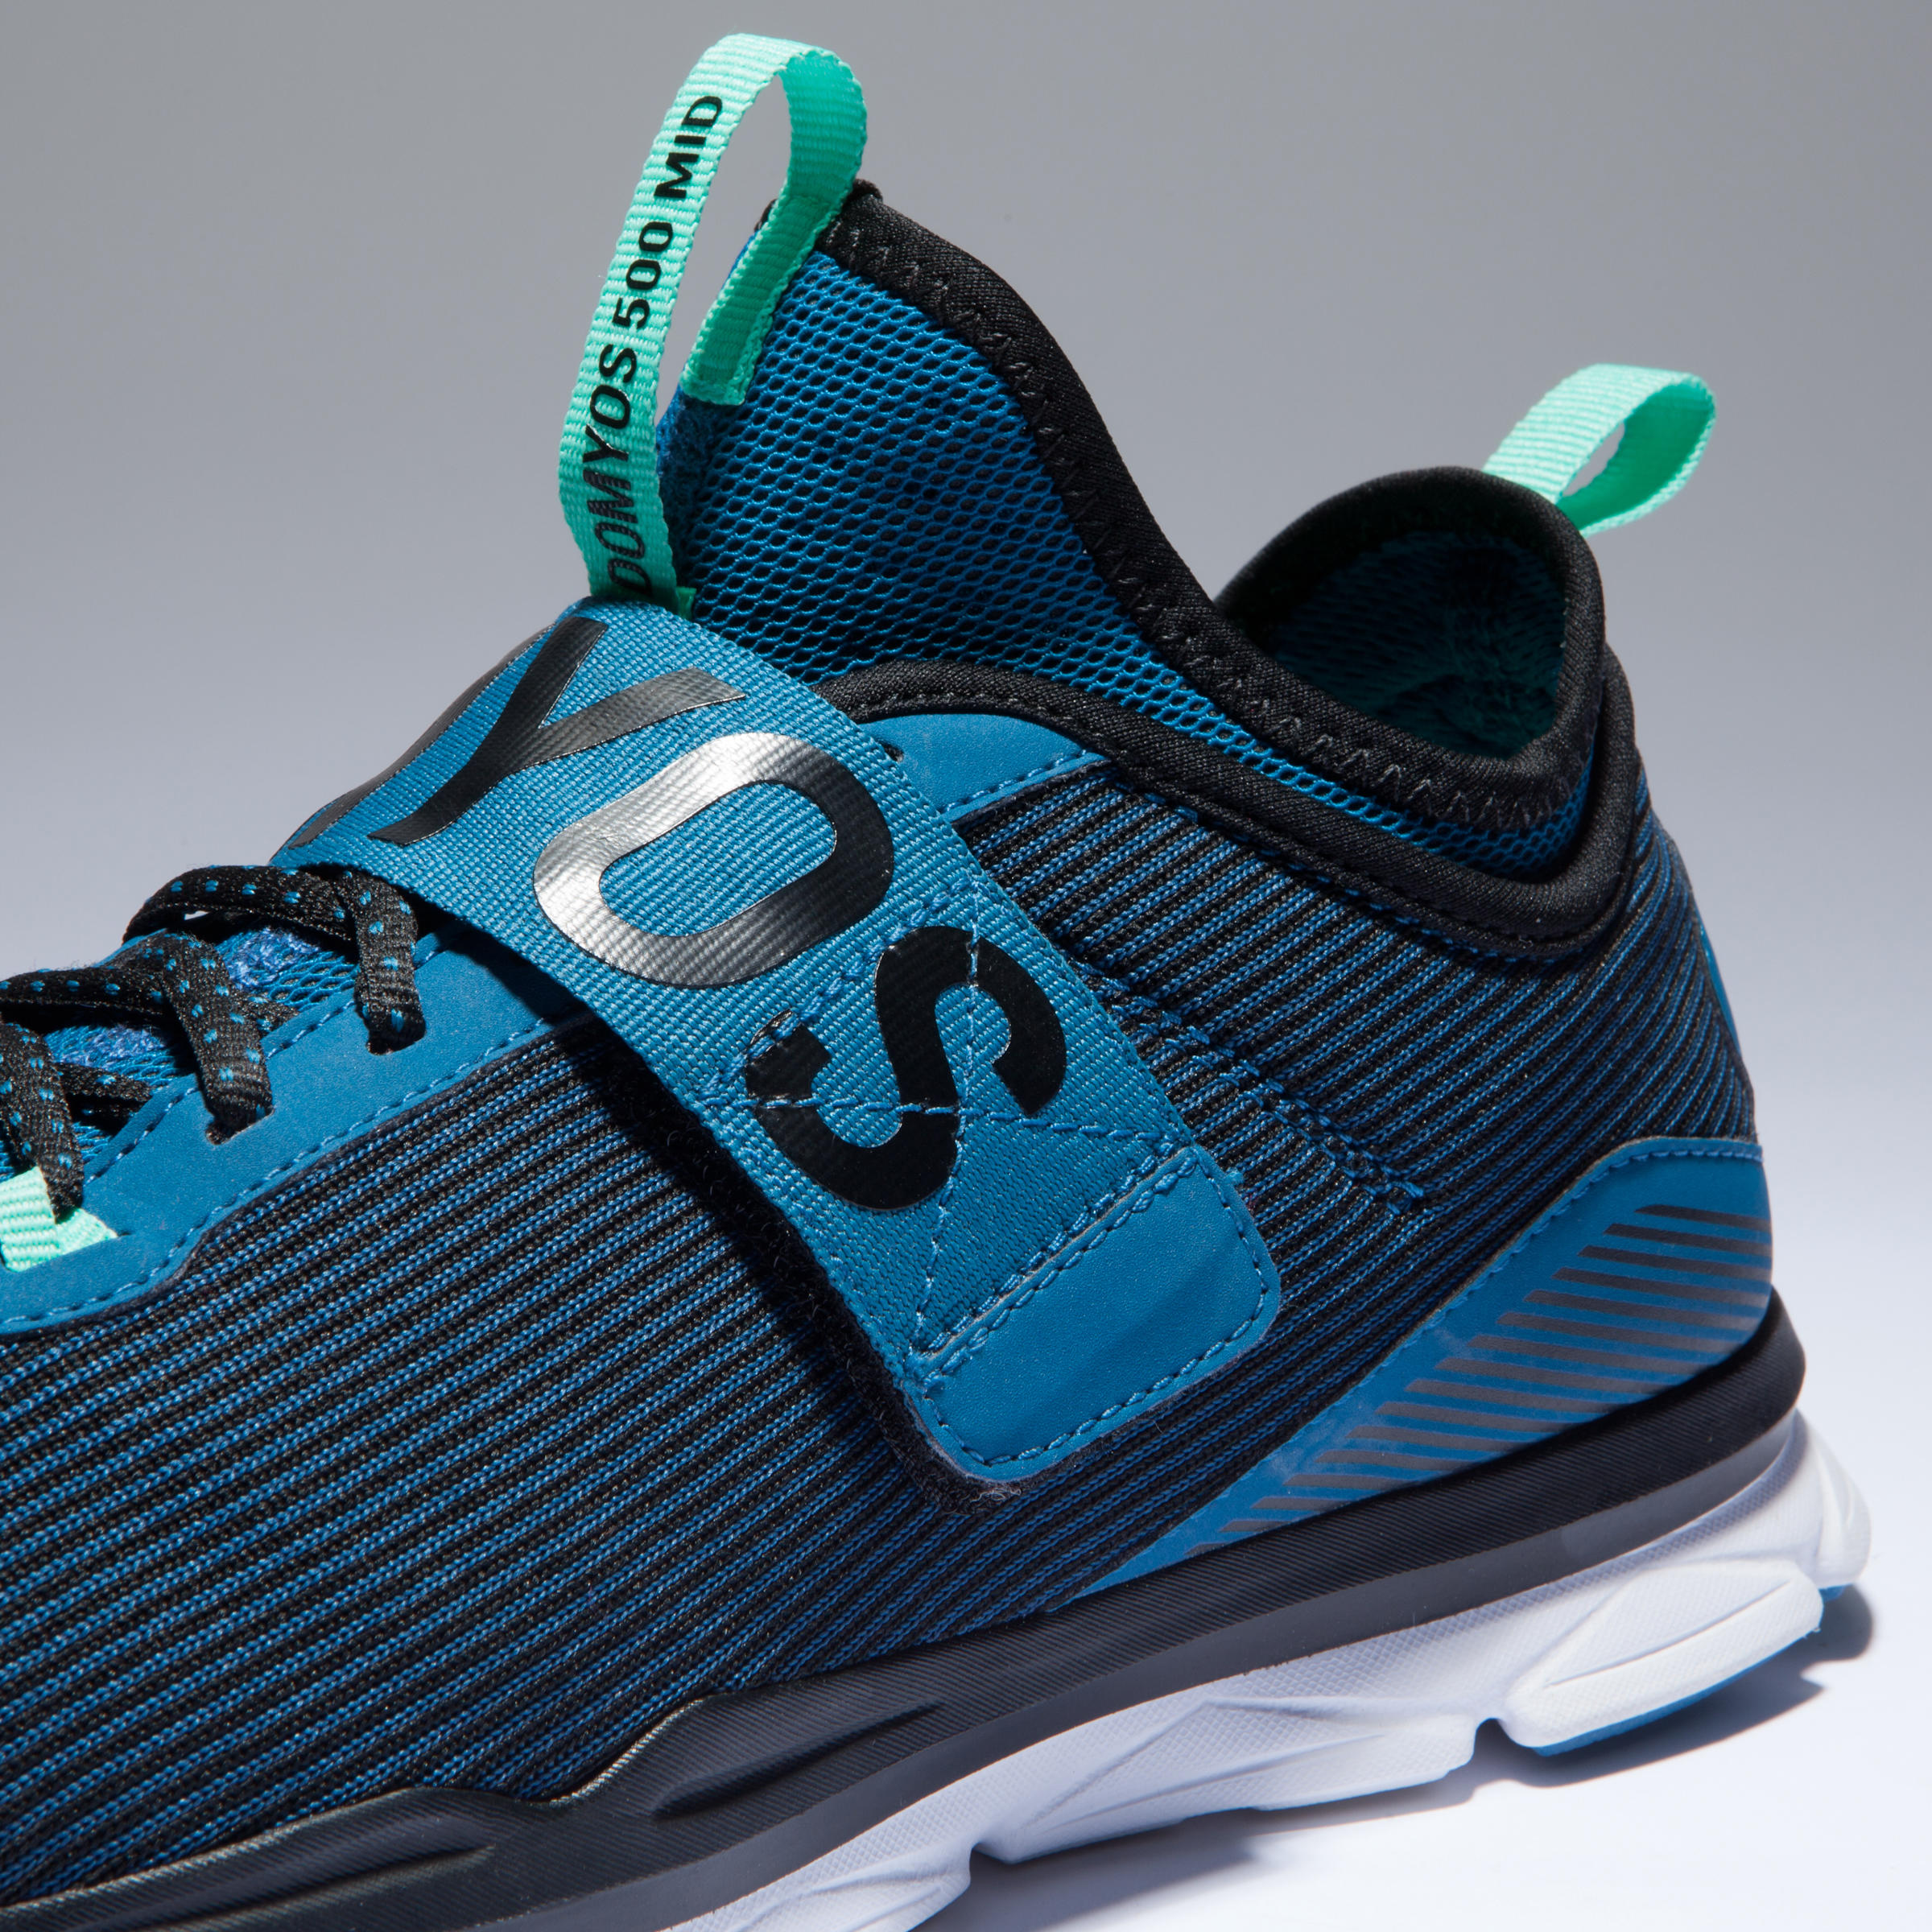 500 Mid Women's Cardio Fitness Shoes - Blue/Green